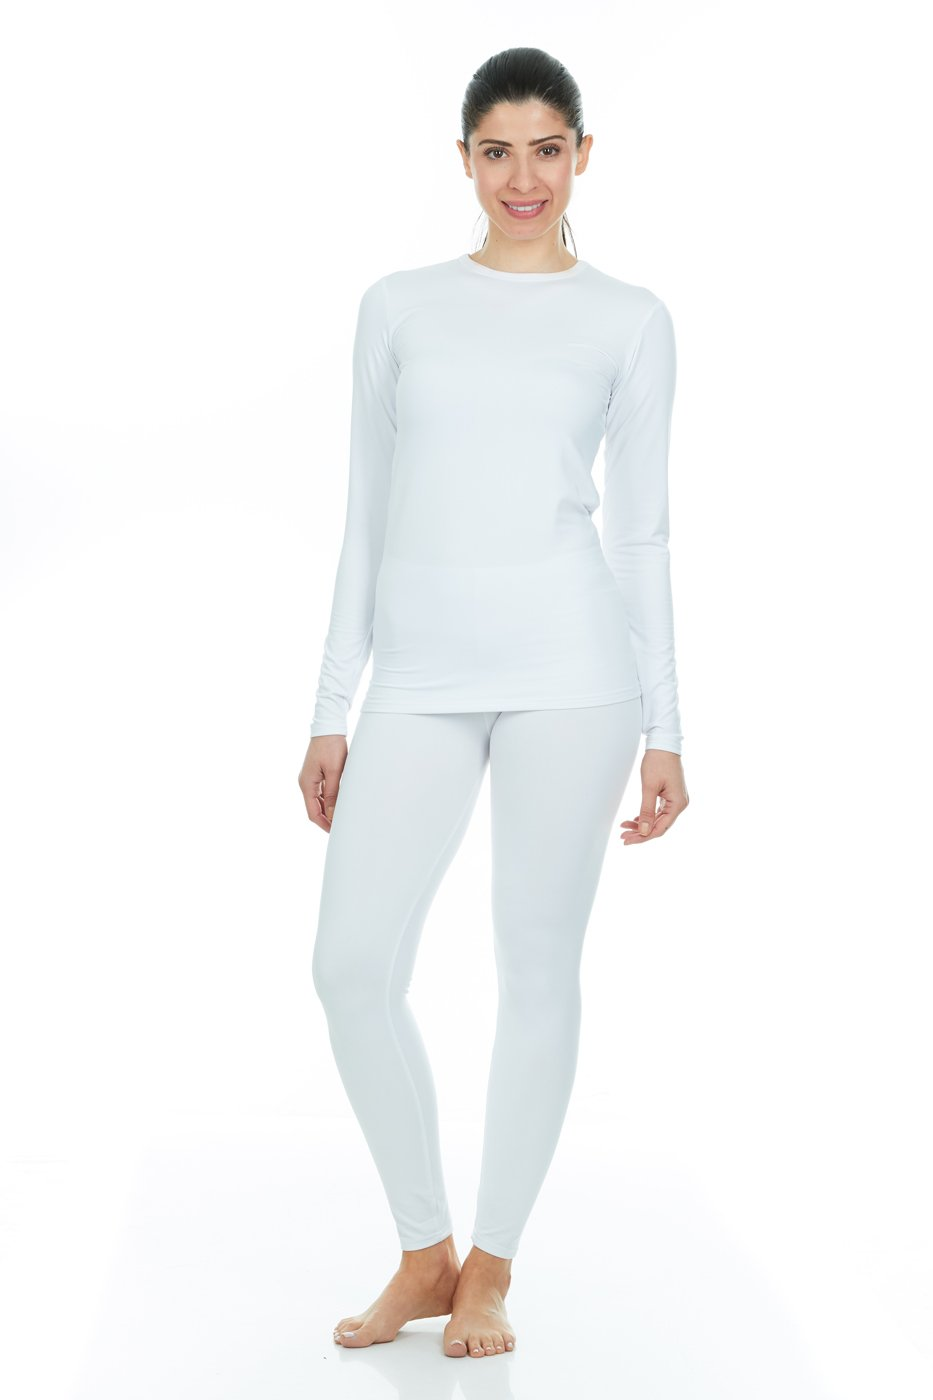 Thermajane Women's Ultra Soft Thermal Underwear Long Johns Set with Fleece Lined (XX-Small, White) by Thermajane